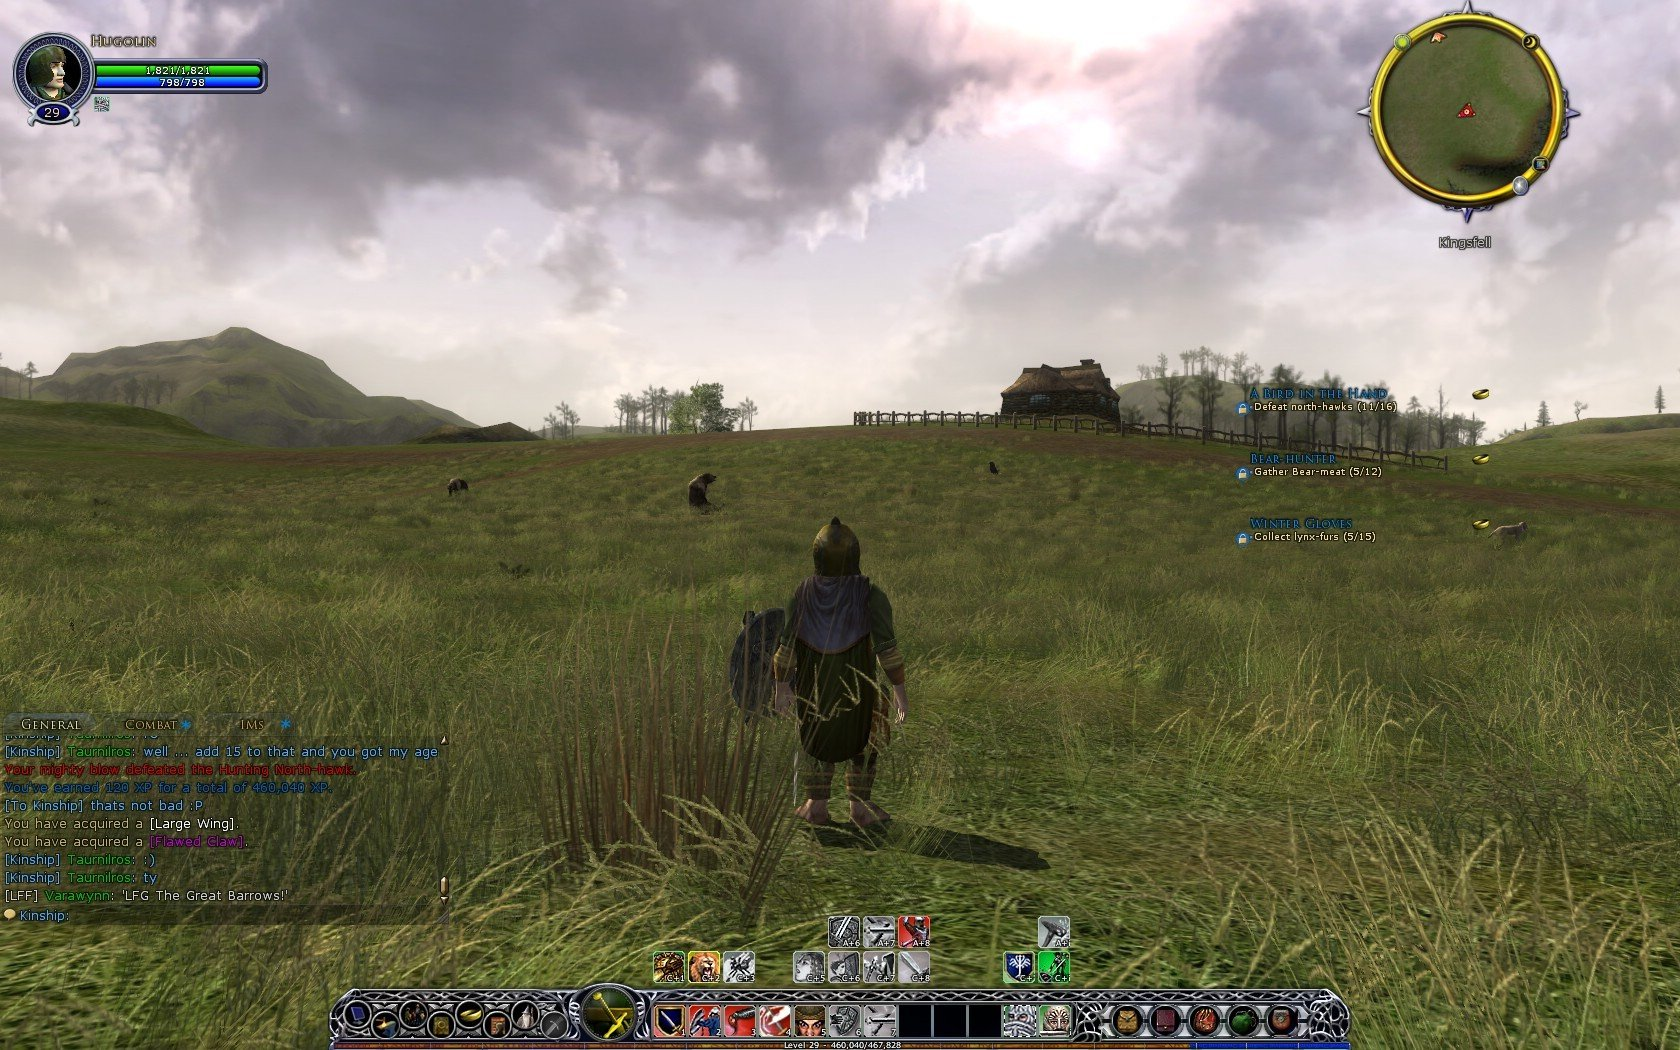 Lord of the Rings Online - lotro graphics sucks...NOT